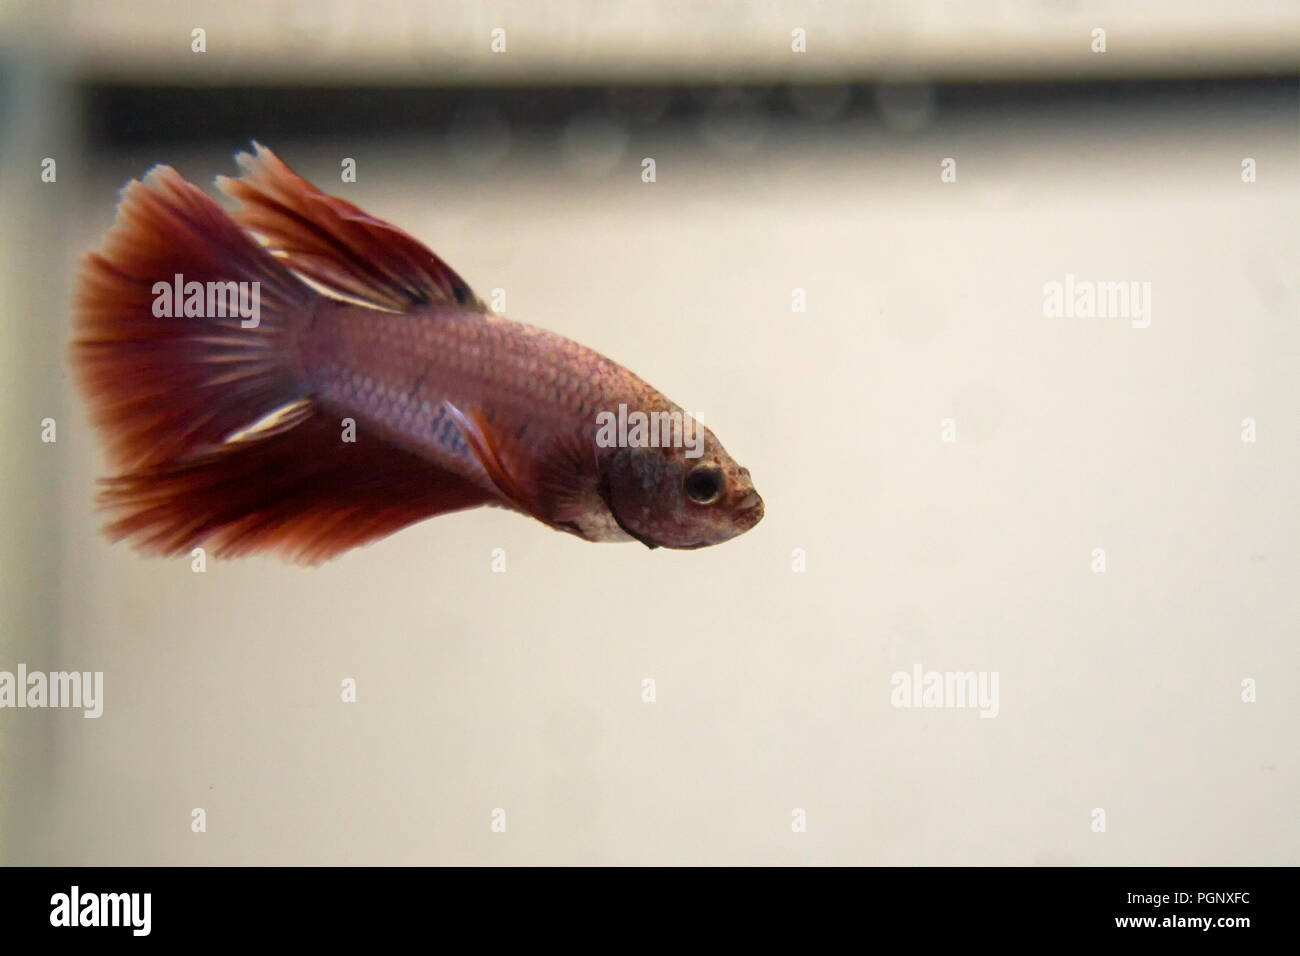 Siamese Fighting Fish Red Pink Halfmoon Betta Splendens. In the wild, betta spar for only a few minutes before one fish backs off. Stock Photo